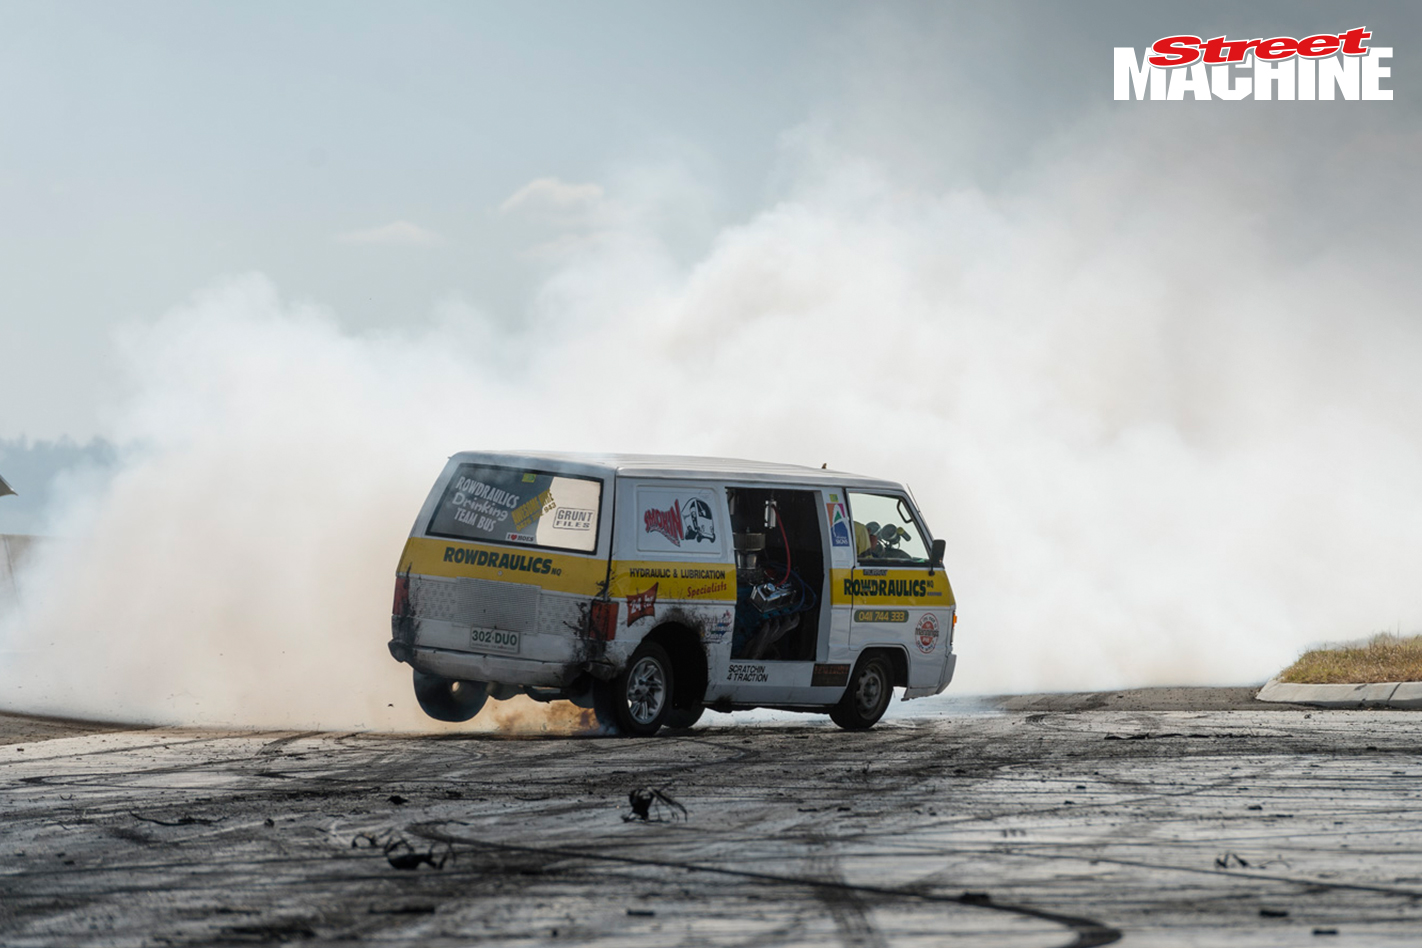 Burnout Van Twin Engine